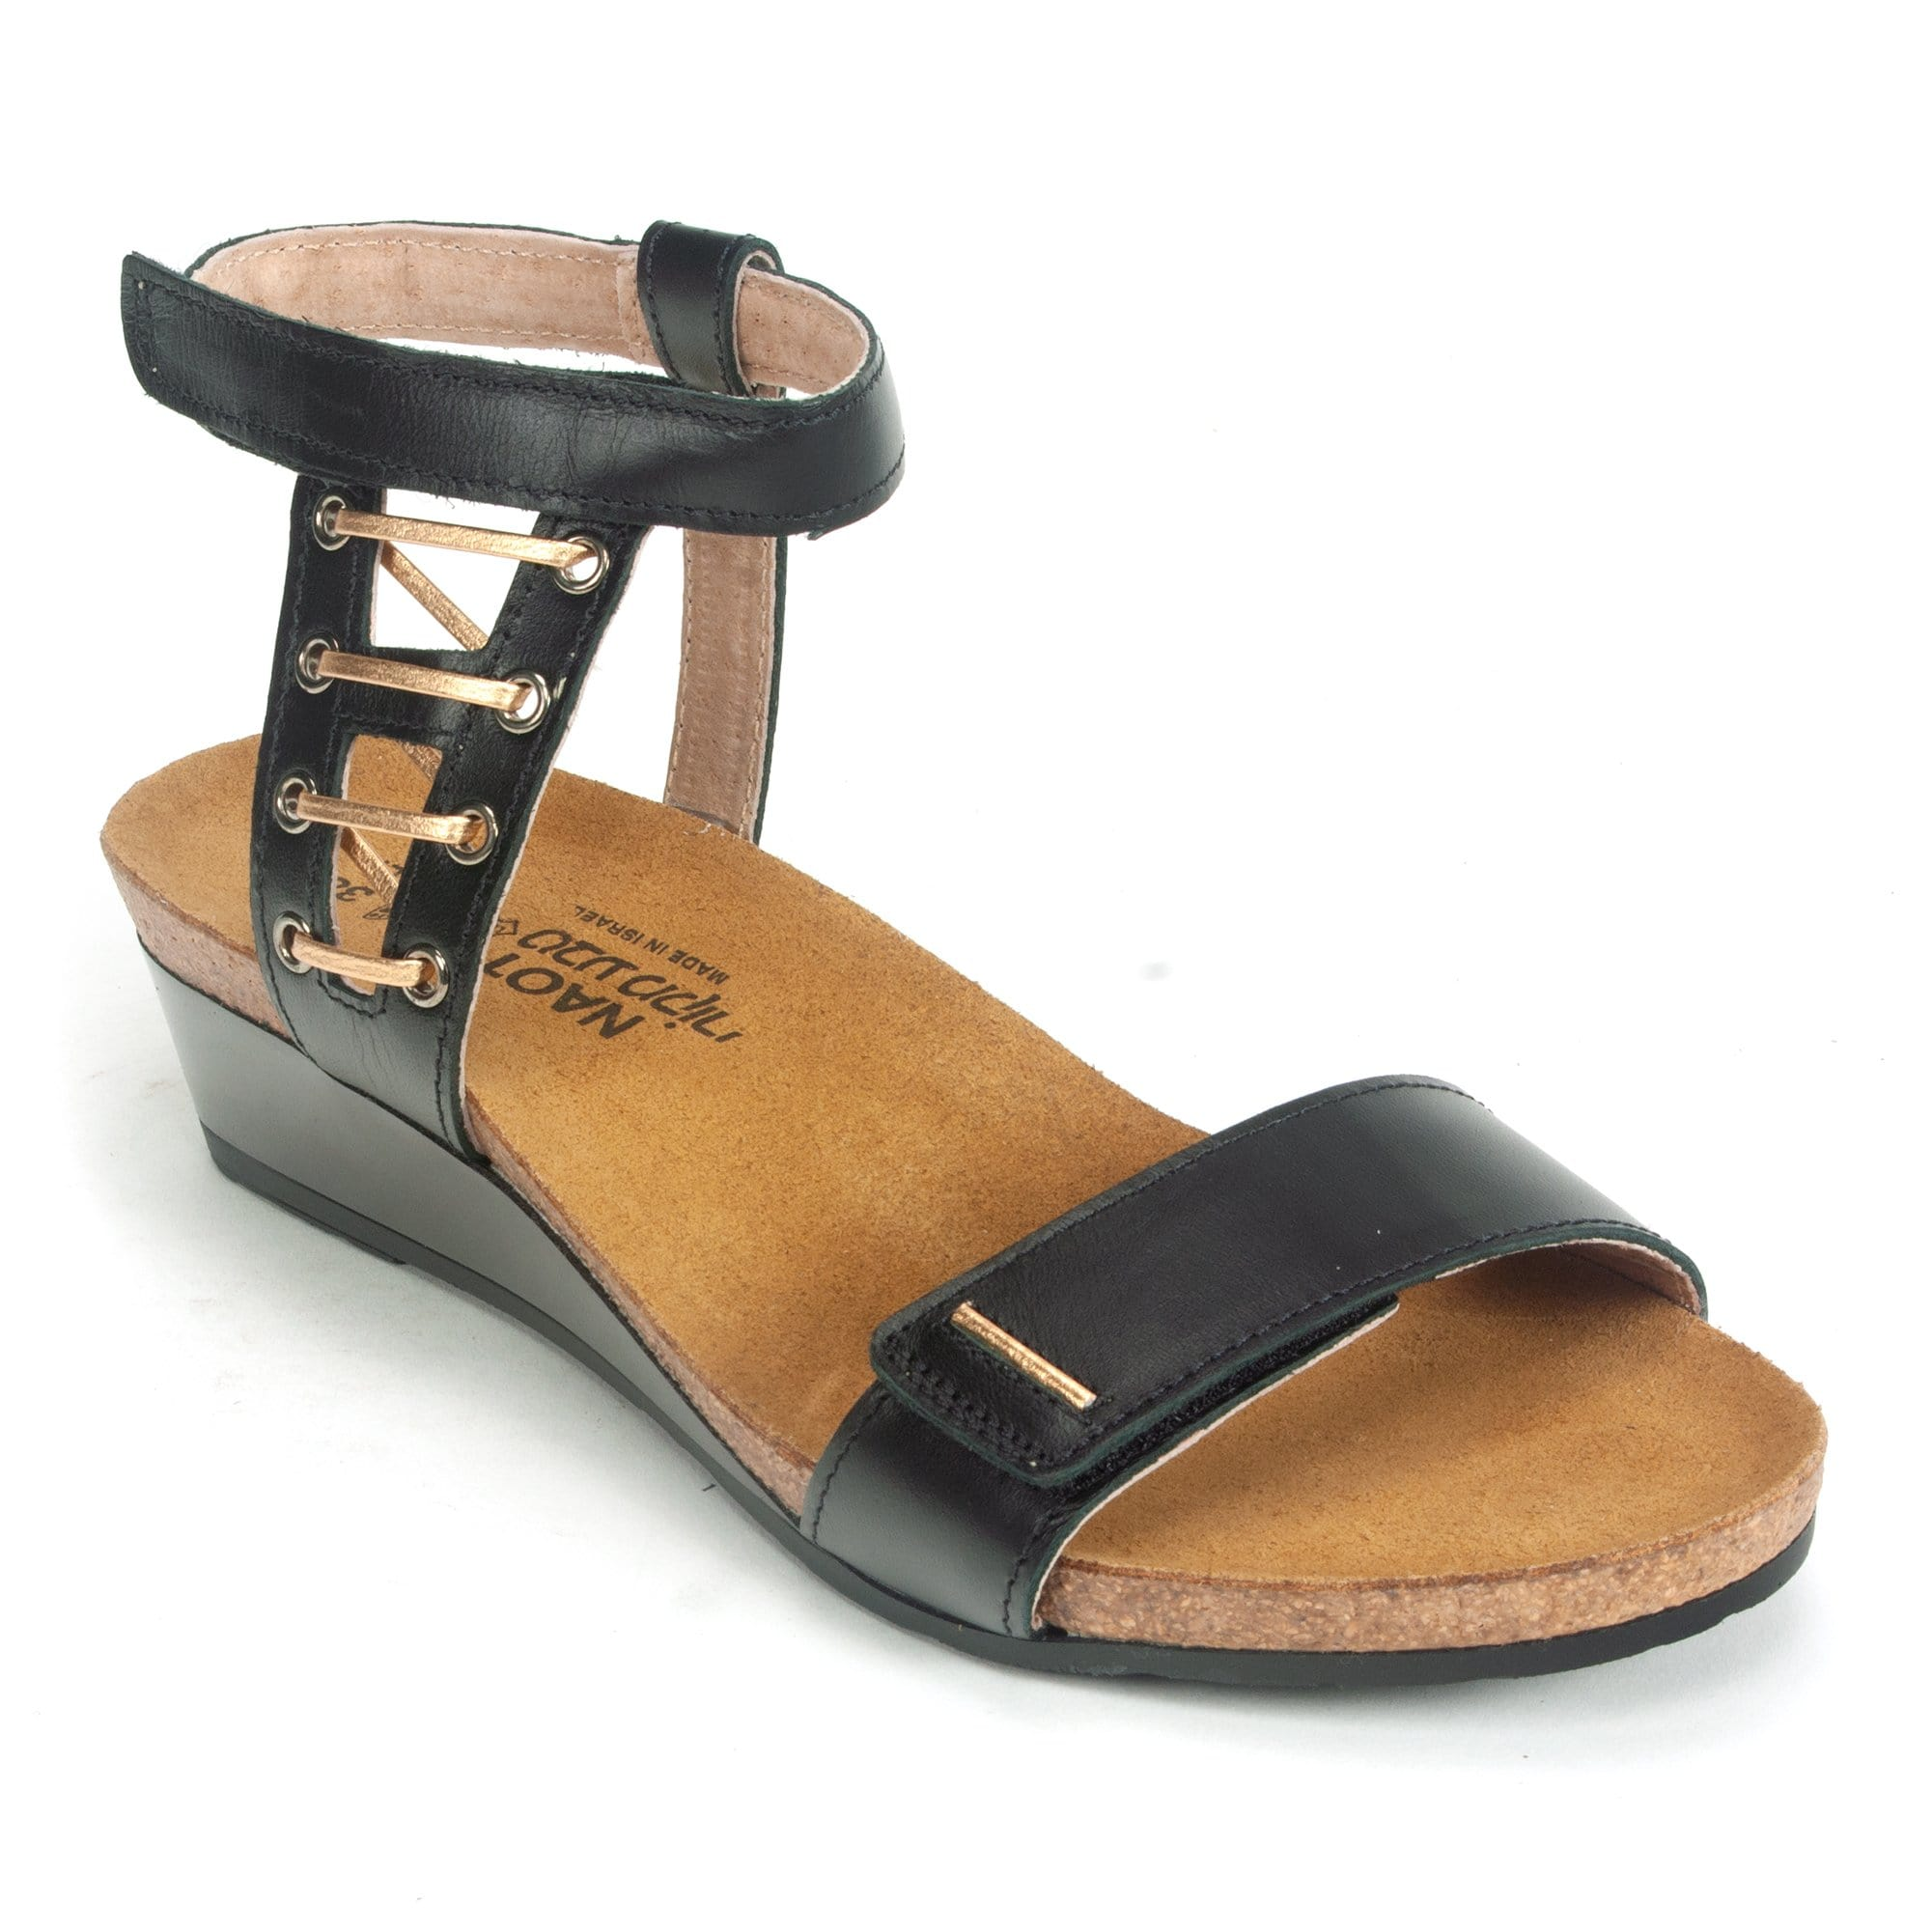 7924ee357a3 Naot Wizard Women s Leather Metallic Accented Ankle Strap Sandal Shoe –  Simons Shoes